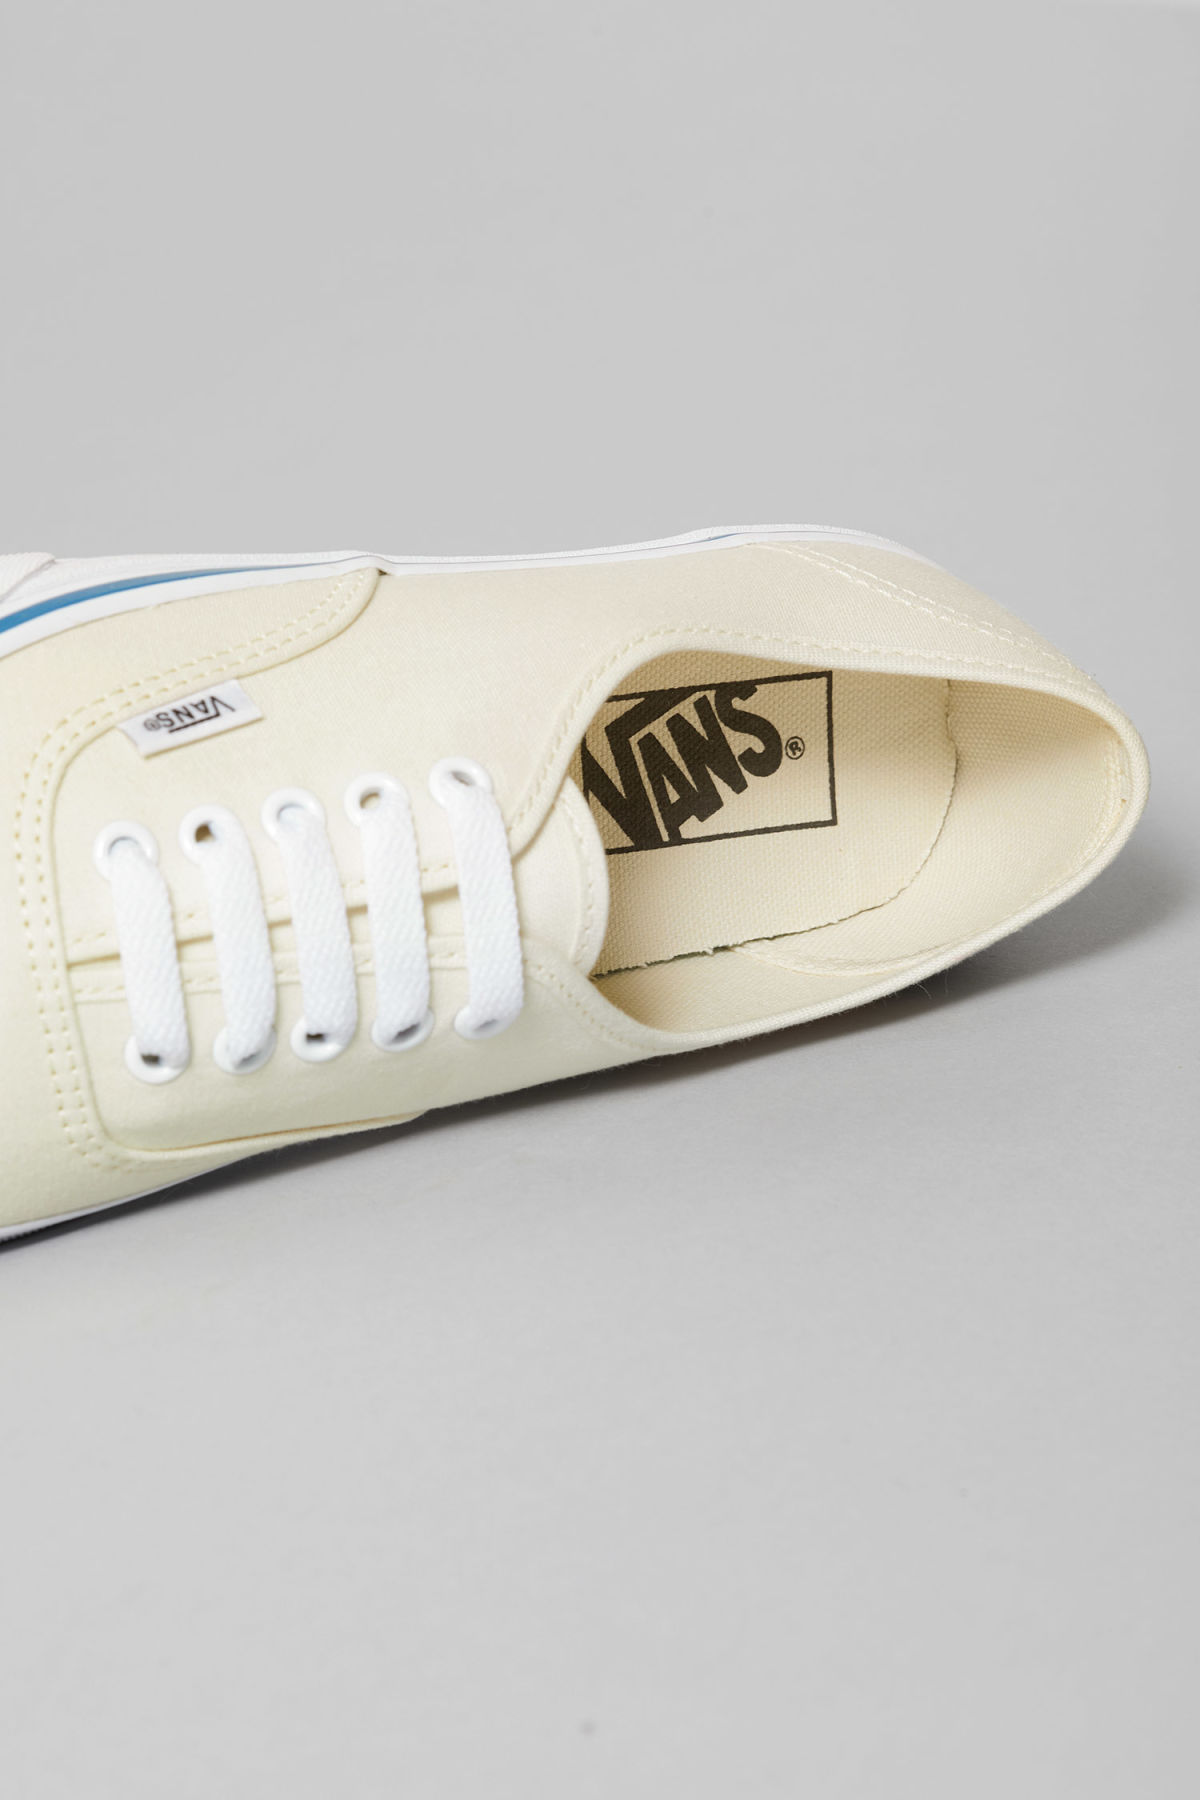 9bdc601e8d ... Detailed image of Weekday authentic white shoes in white